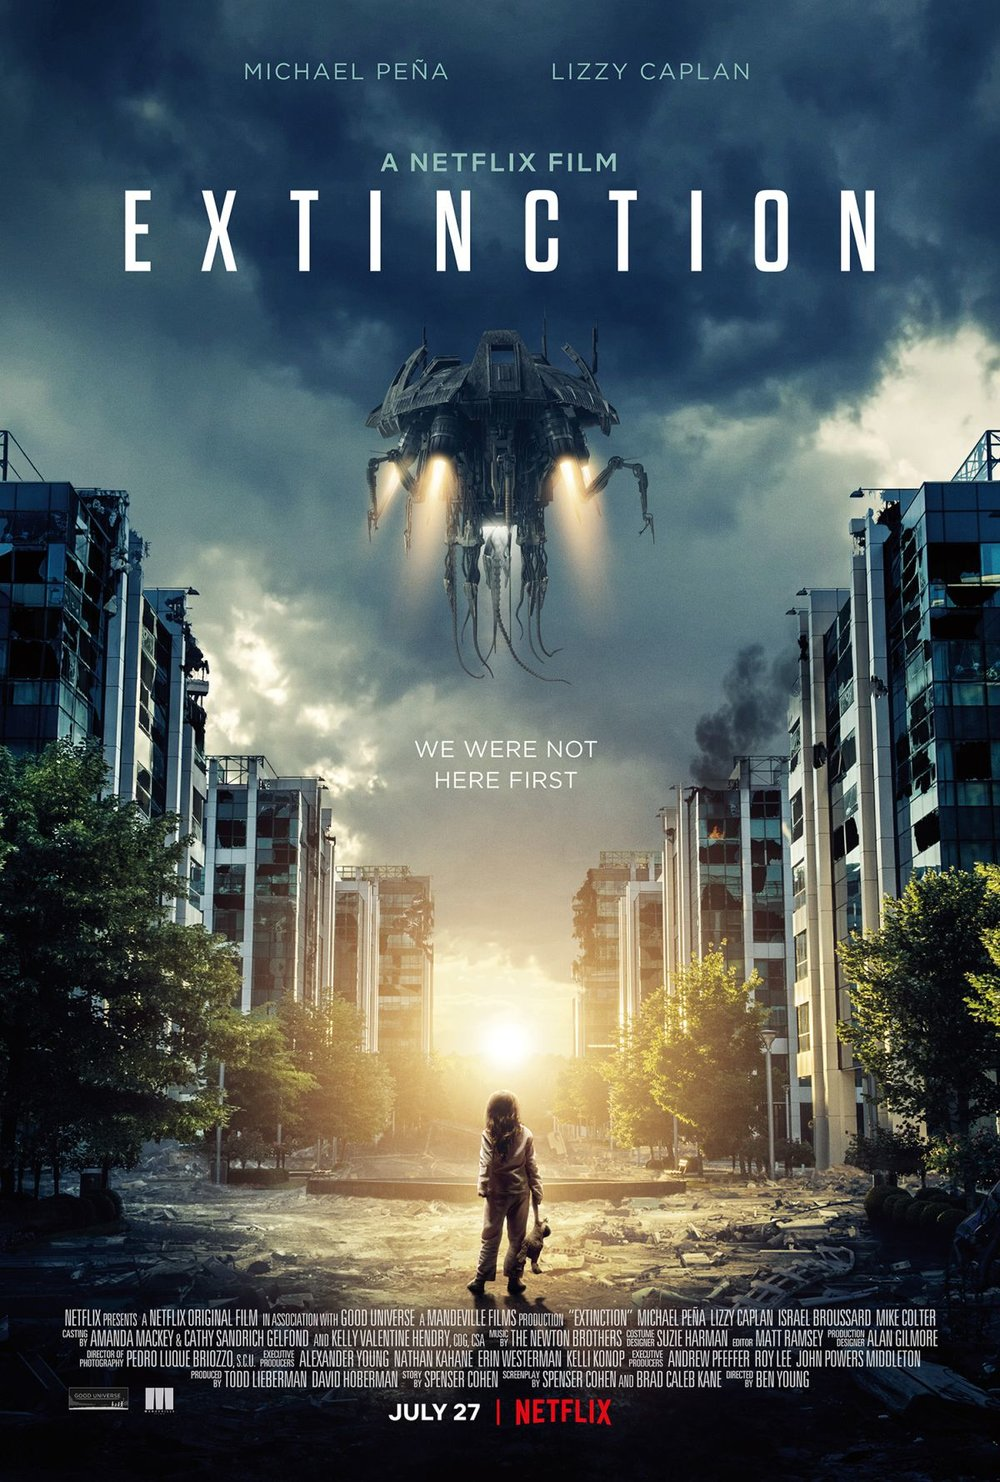 aliens-invade-earth-and-michael-pea-is-the-key-to-stopping-them-in-trailer-for-netflixs-extinction1